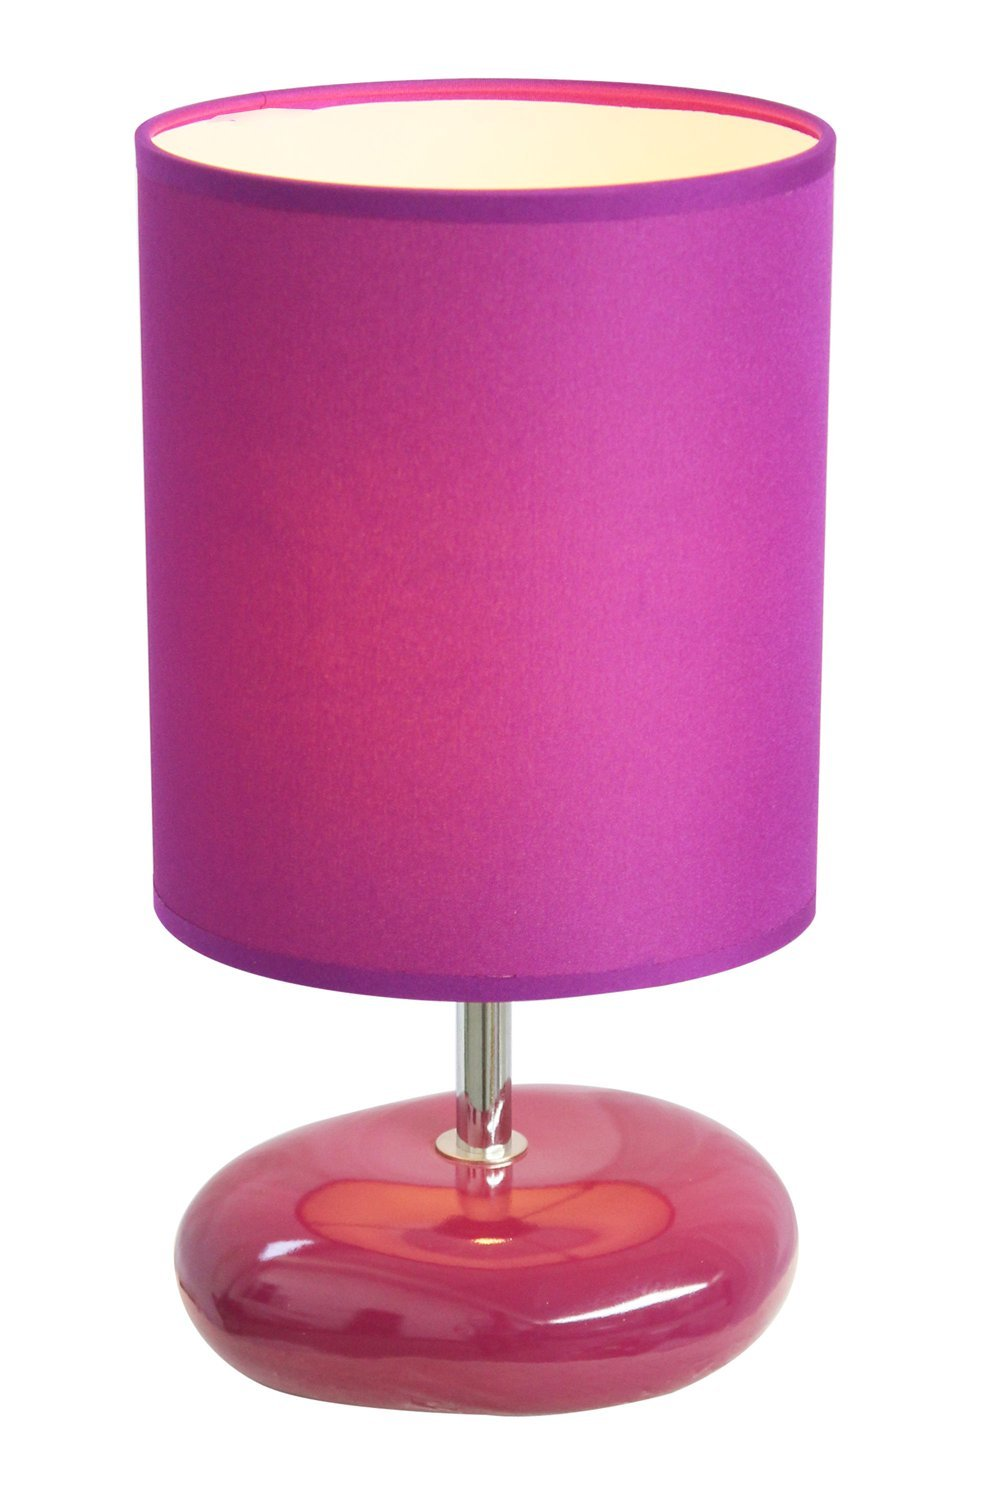 Simple designs lt2005 prp stonies small stone look table lamp simple designs lt2005 prp stonies small stone look table lamp purple small lamps for bedroom amazon geotapseo Gallery